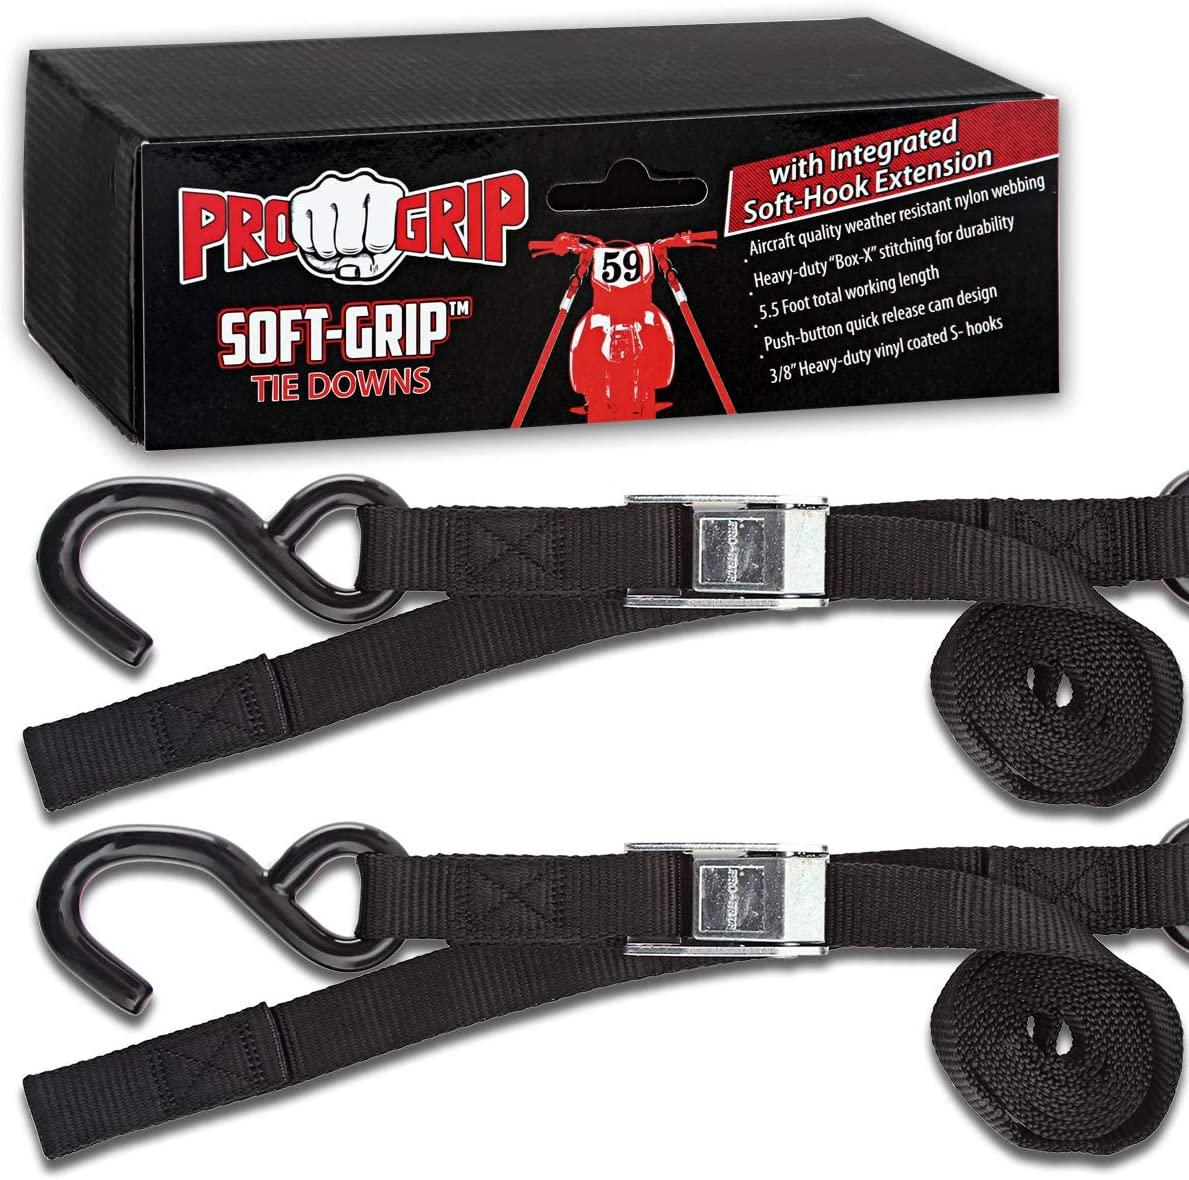 Blk Progrip Powersports Motorcycle Soft Loop Tie Down Straps Lab Tested 2 Pack